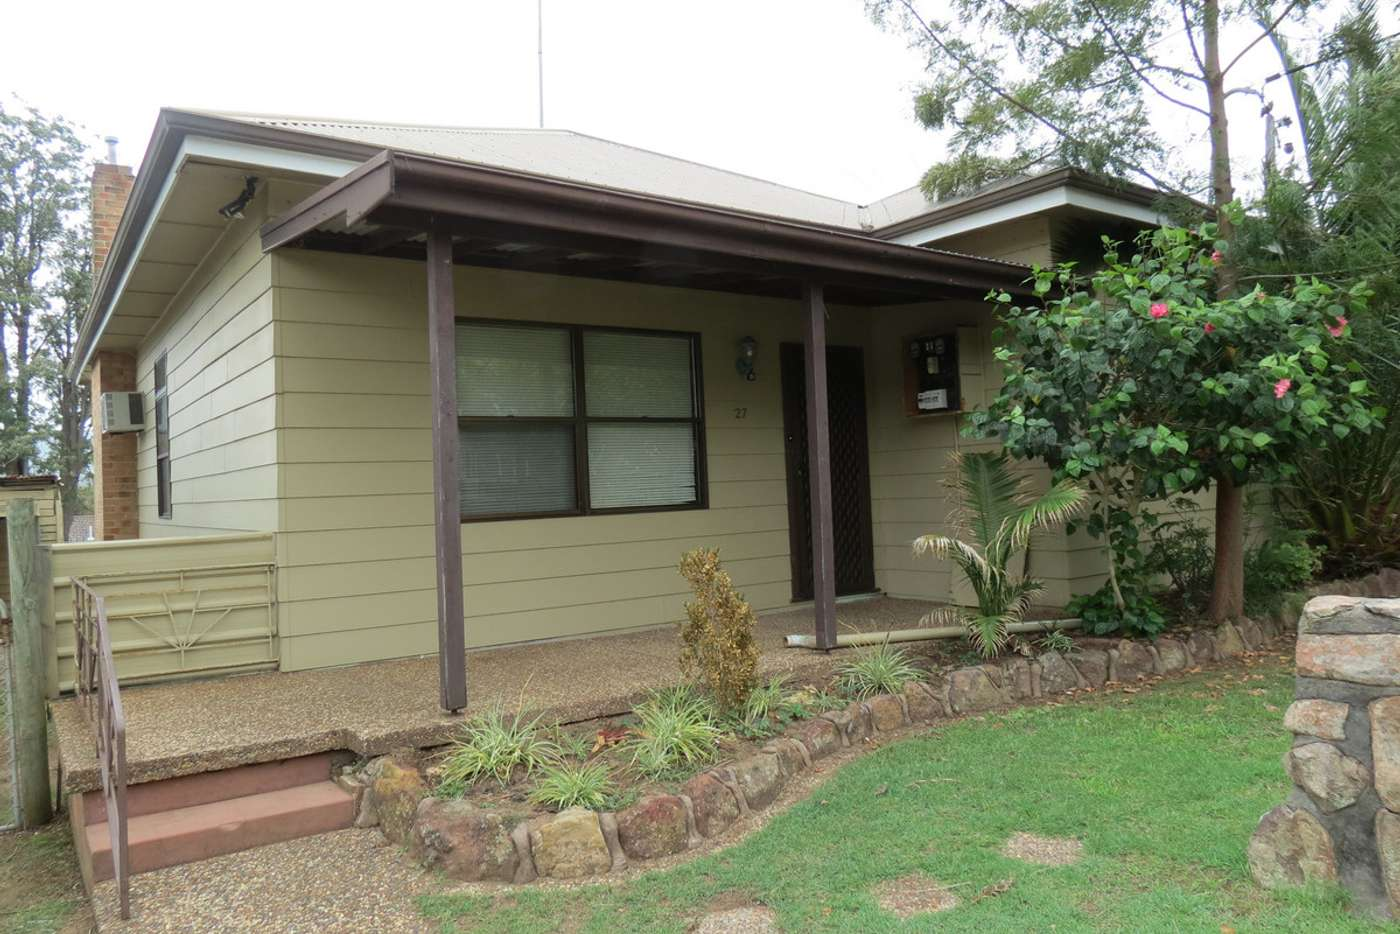 Main view of Homely house listing, 27 Desmond Street, Cessnock NSW 2325